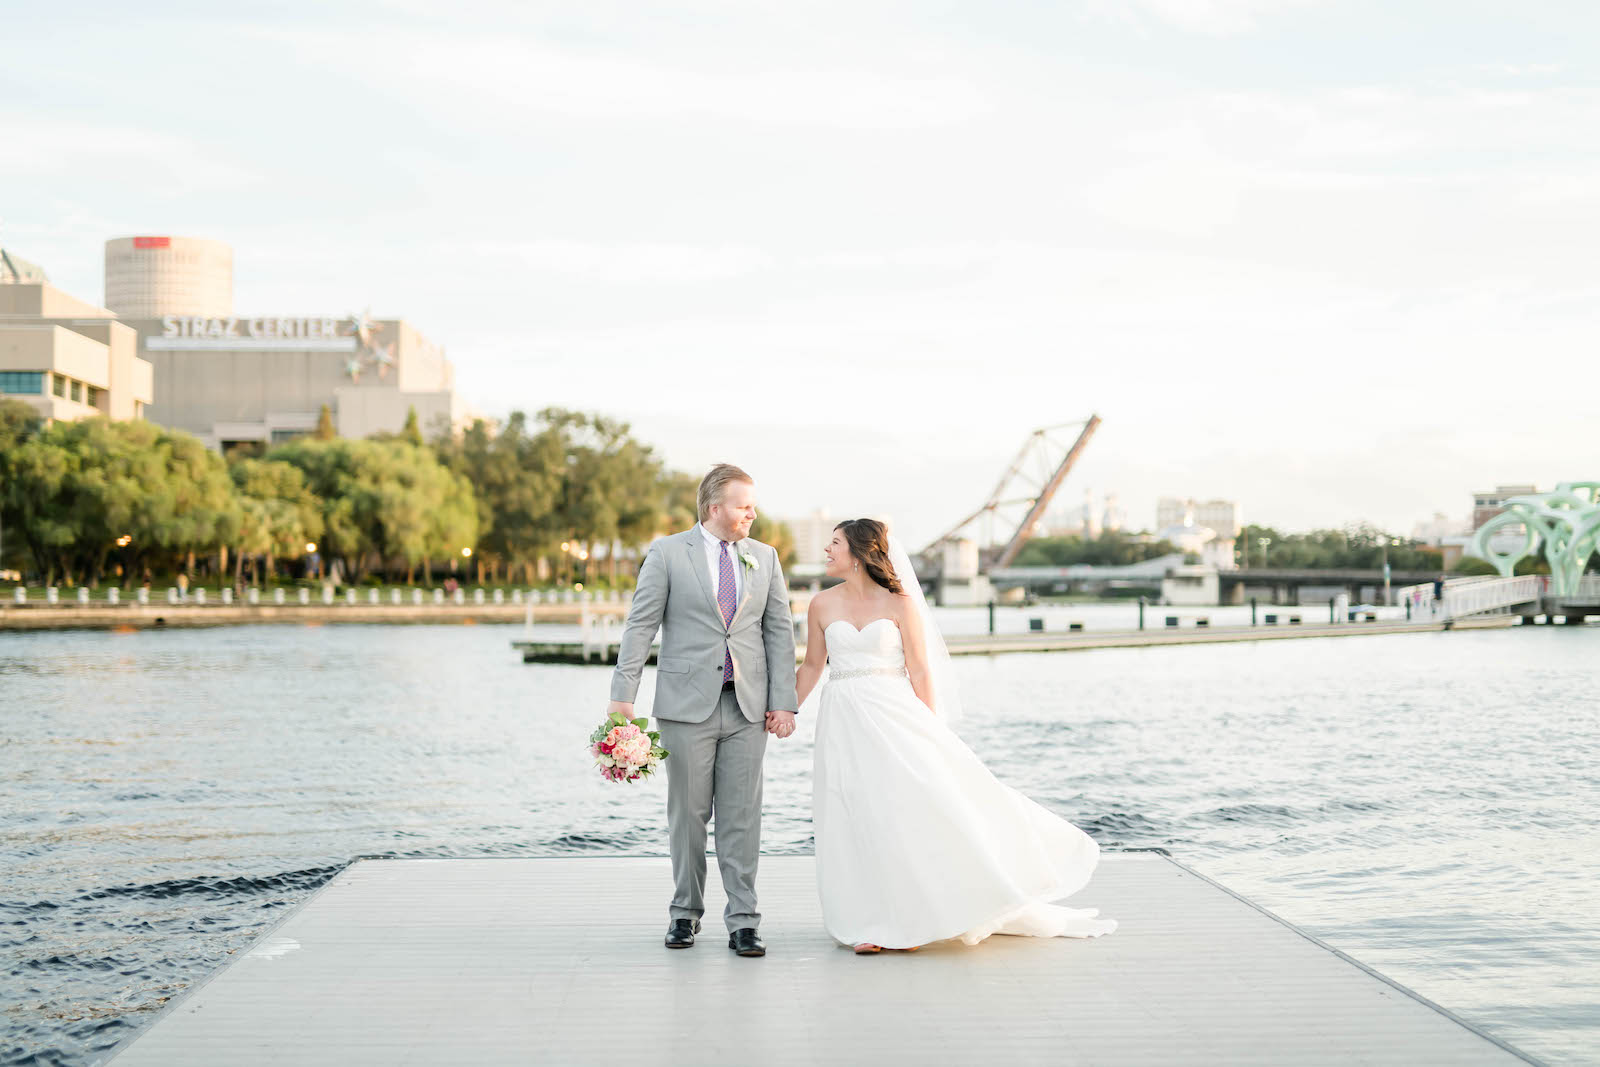 Tampa Bay Bride and Groom Waterfront Photo